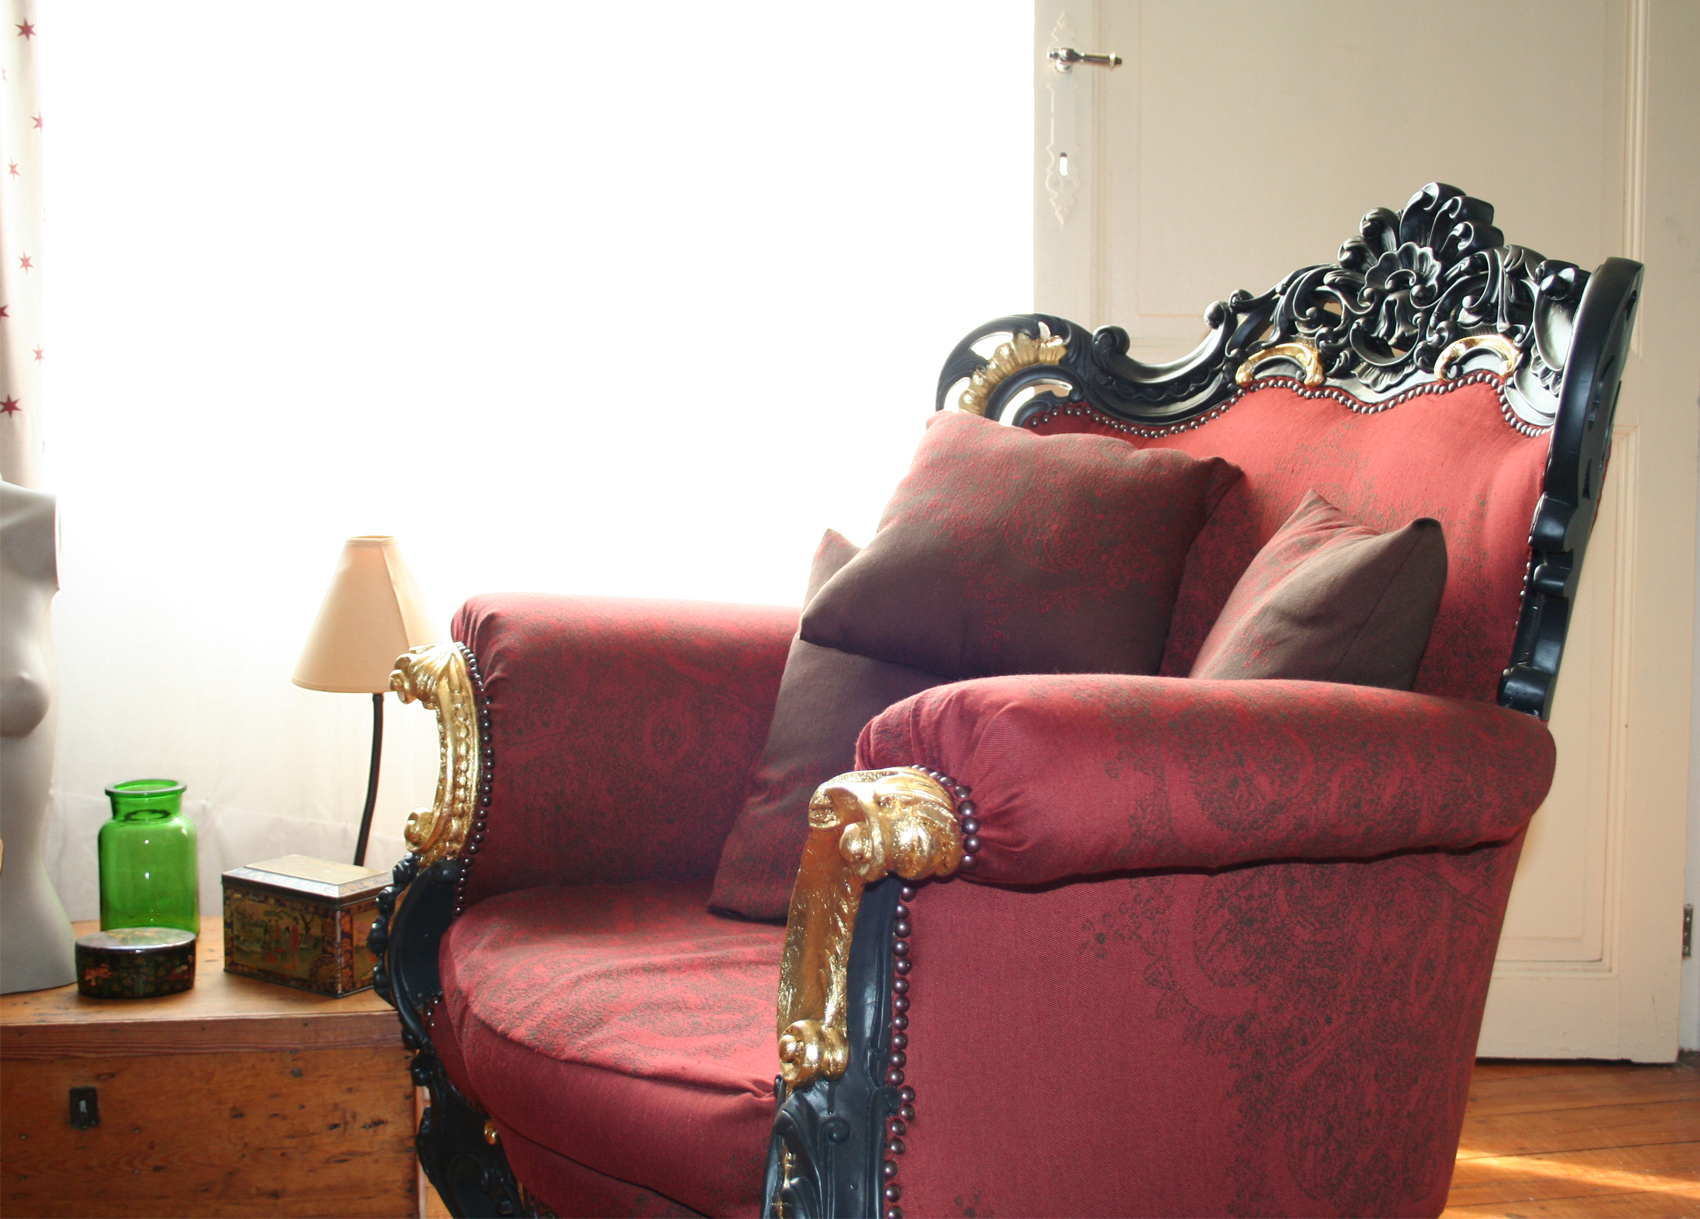 arkendai-fauteuil-ambiance-1700